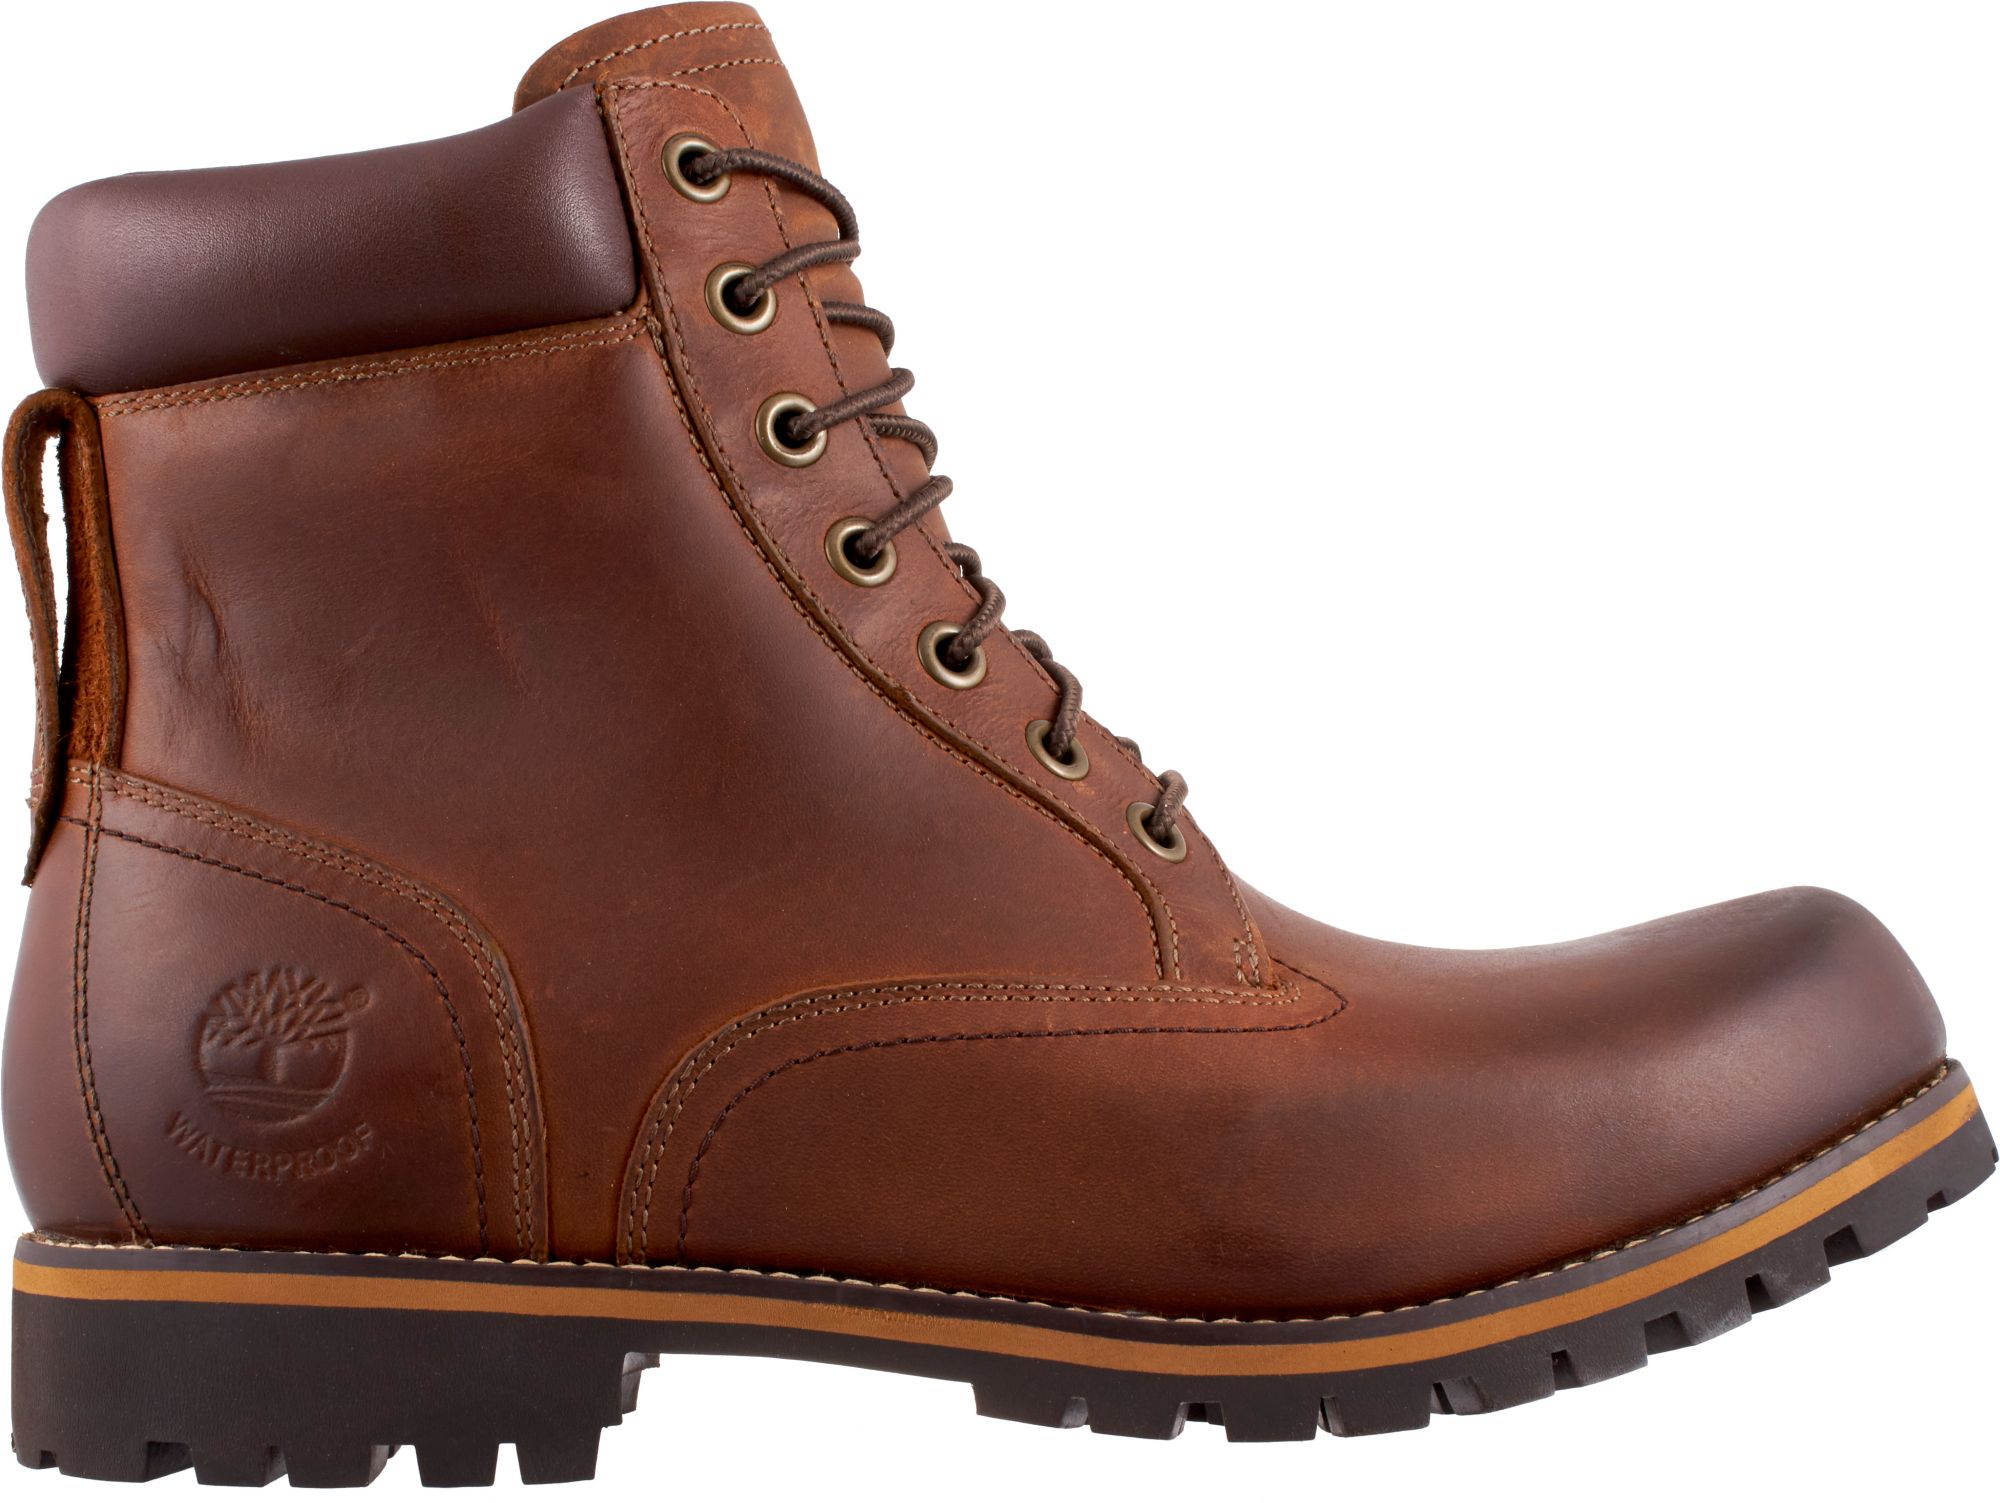 Timberland Men S Earthkeepers Rugged Mid Waterproof Hiking Boots